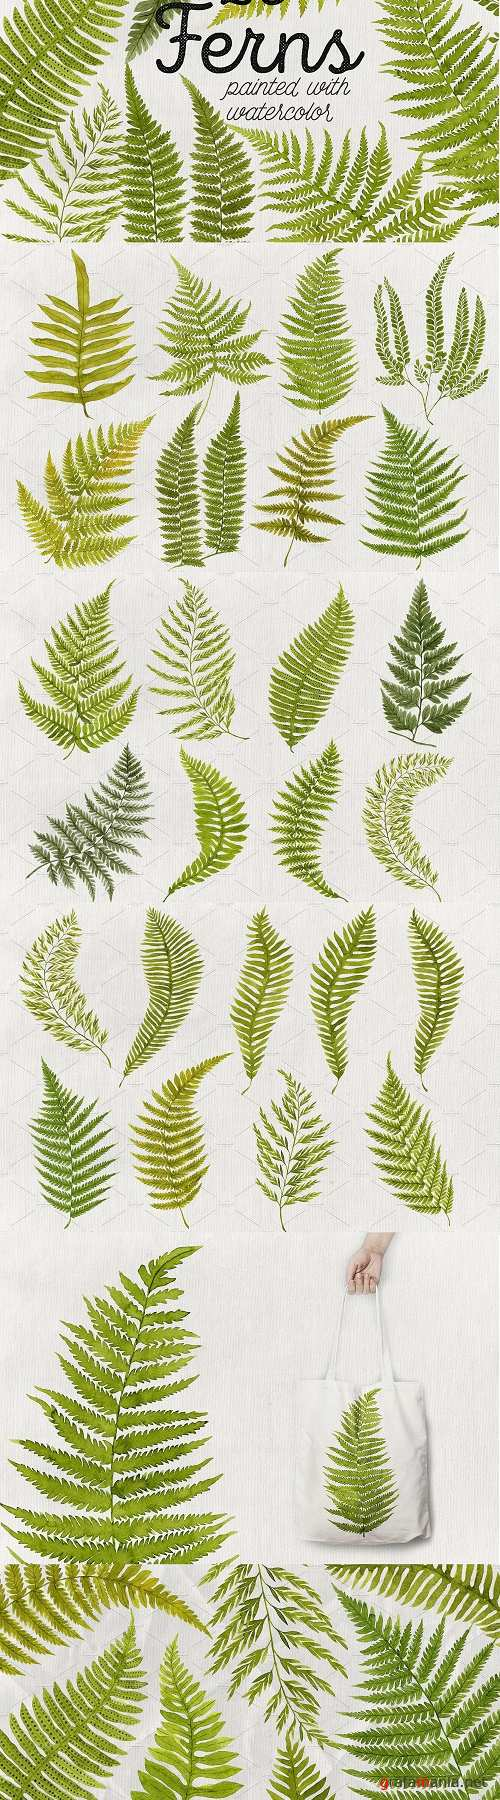 25 Watercolor Ferns - 2448978